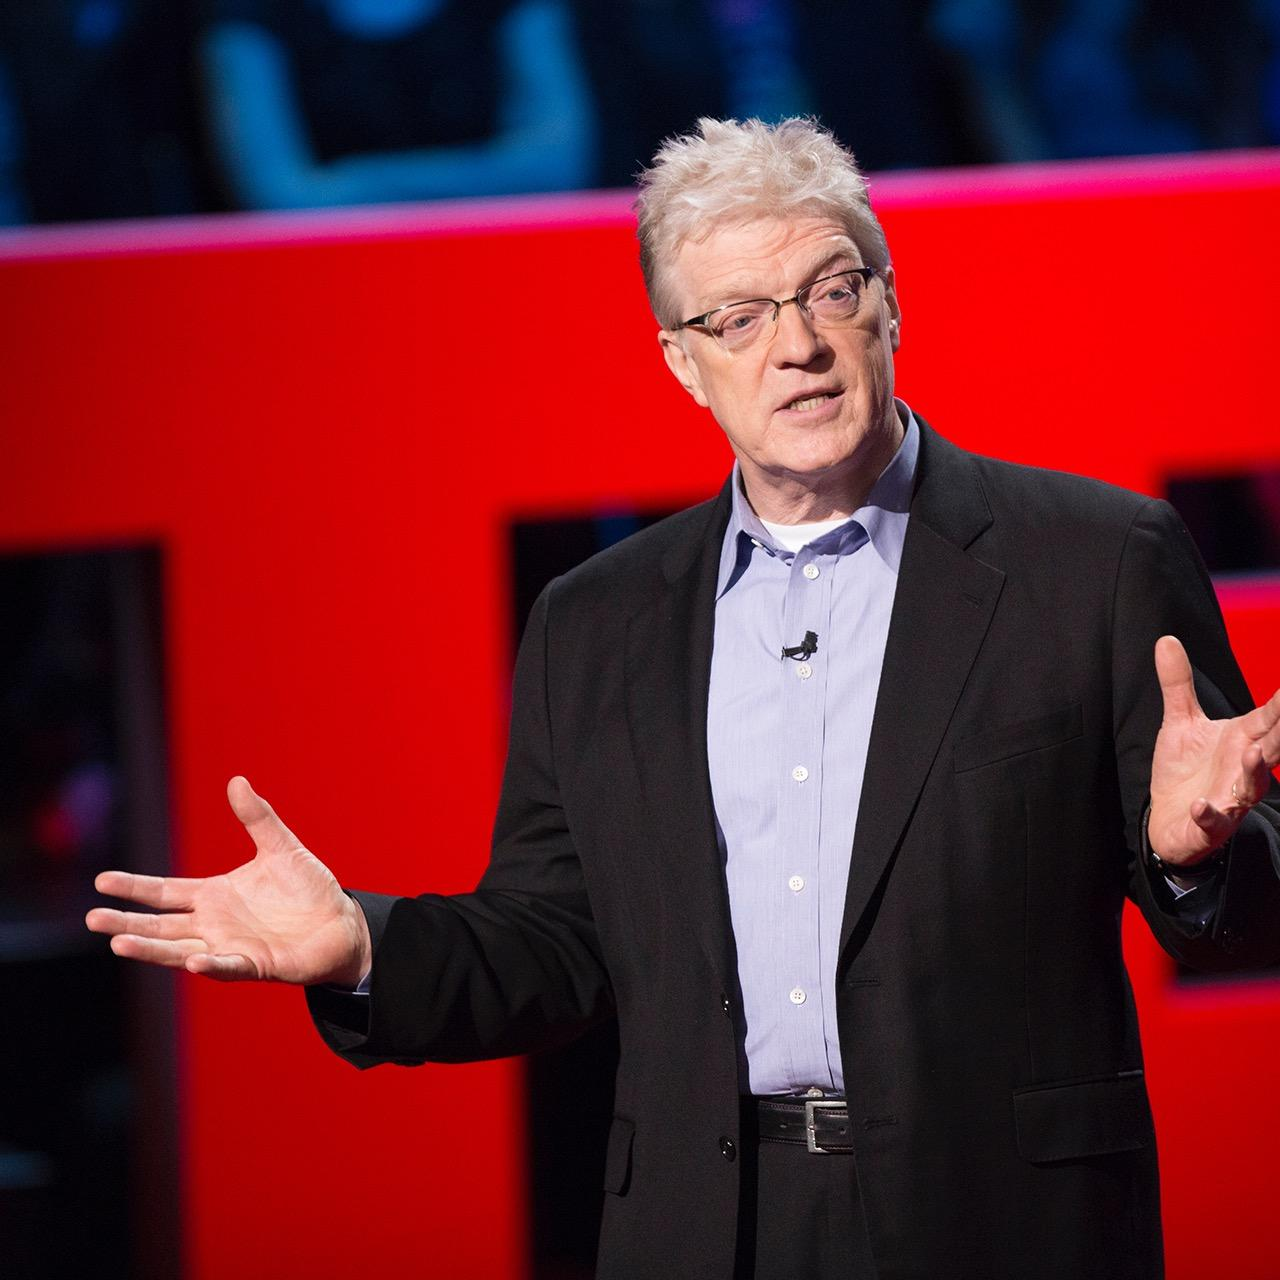 Ken Robinson Net Worth